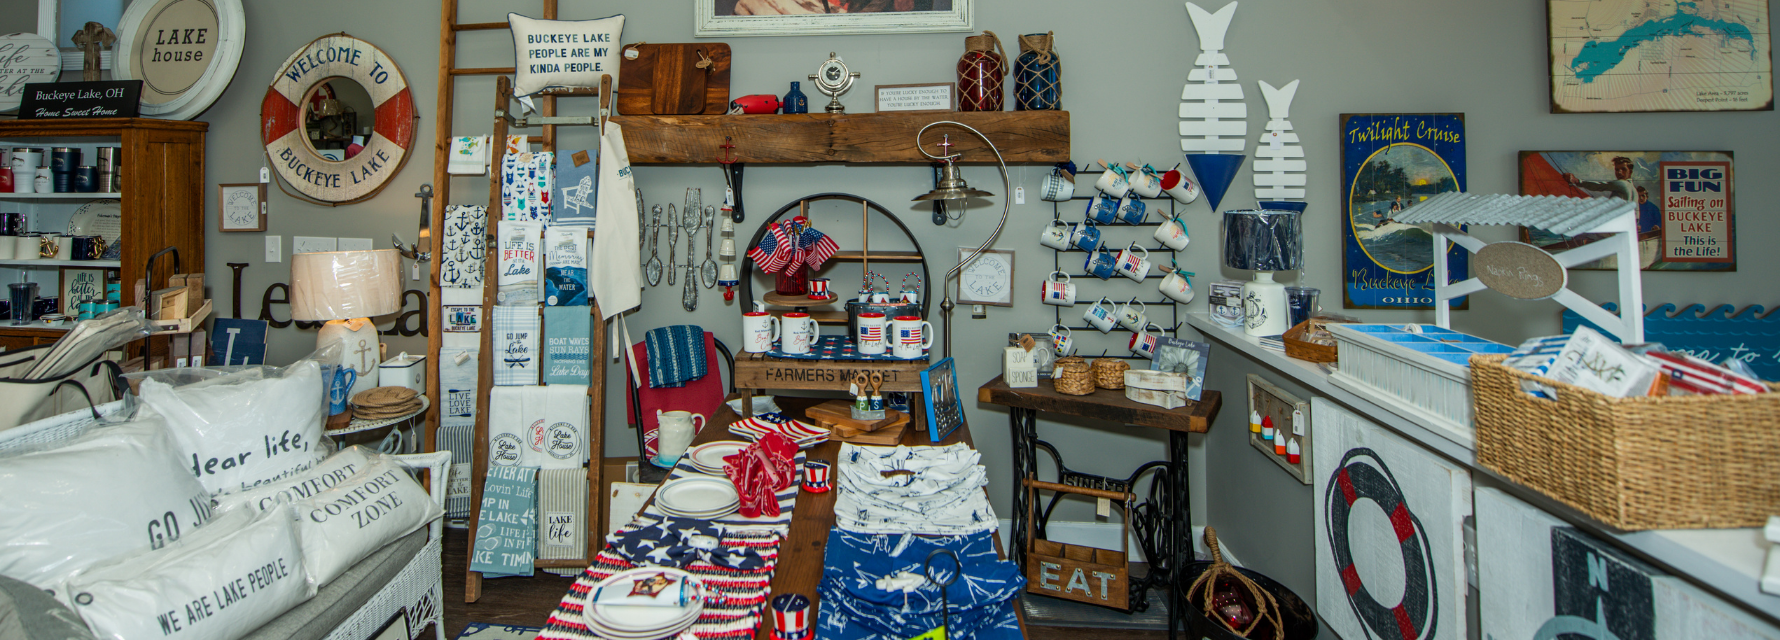 lake merchandise in a store